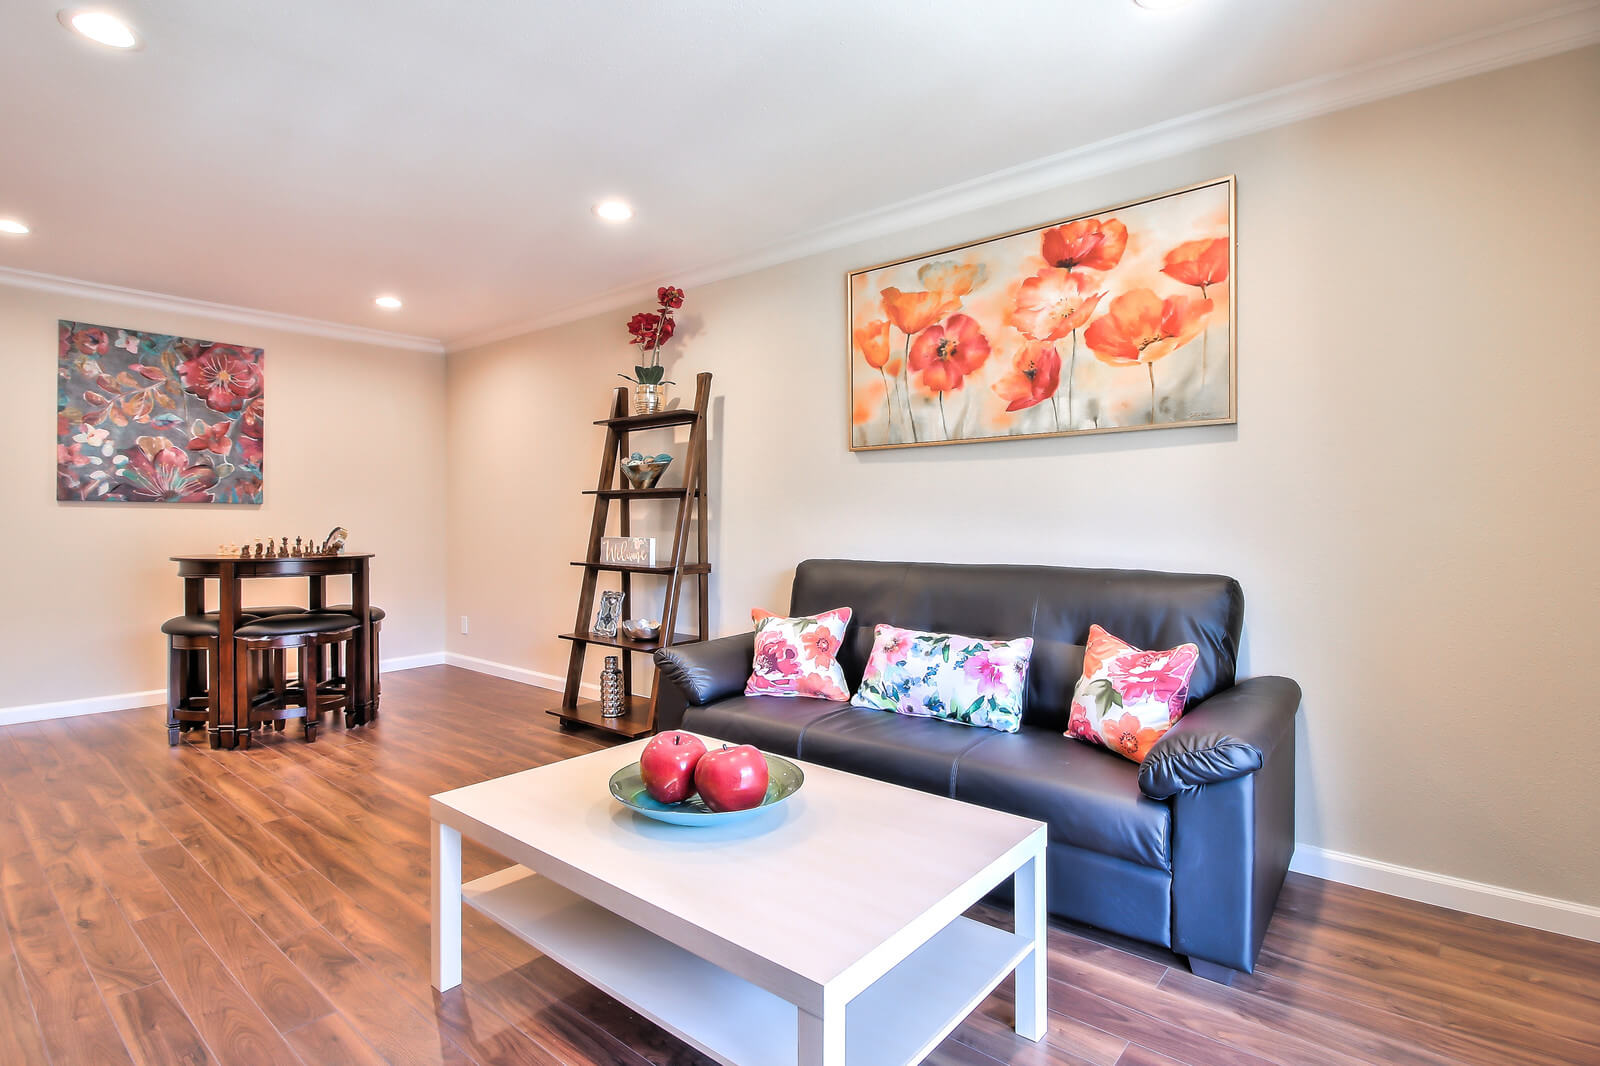 Fully furnished CHBO certified property